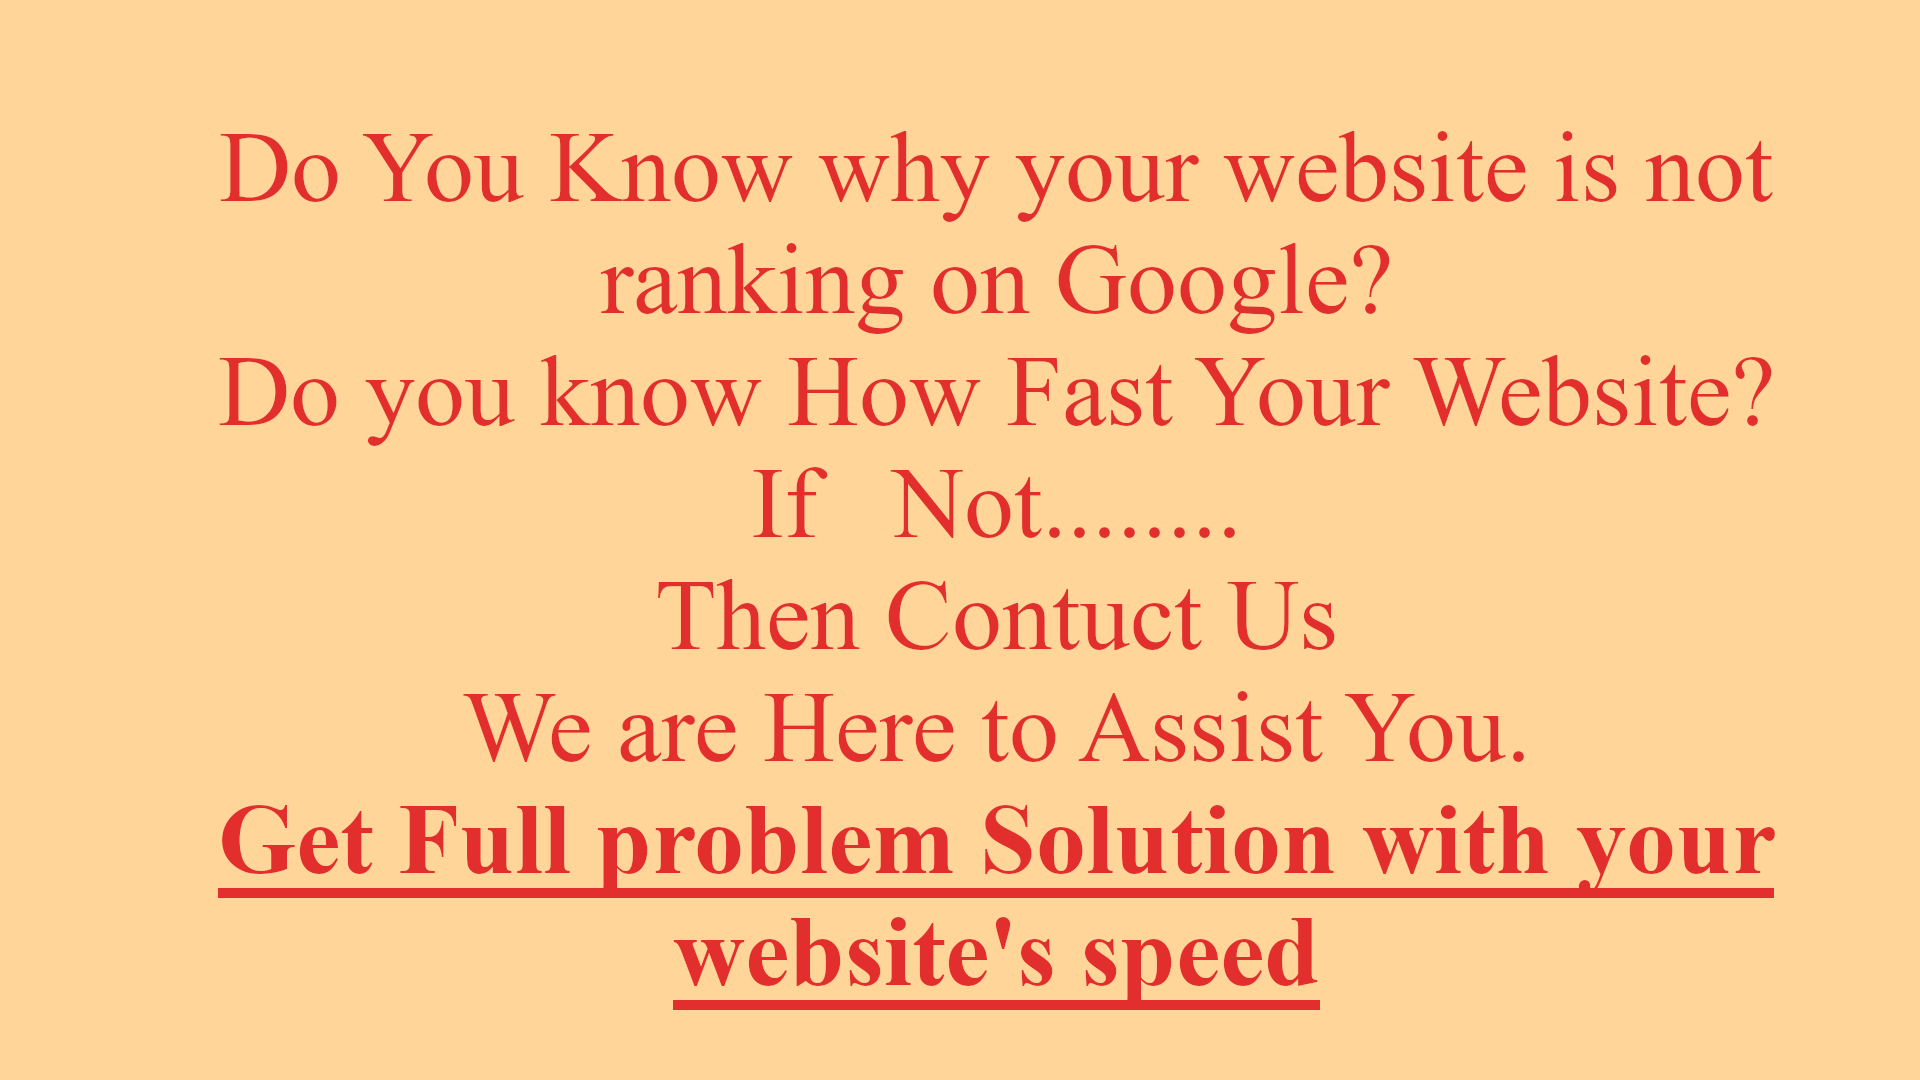 Rank Your Website on google Naturally increasing your website's load speed